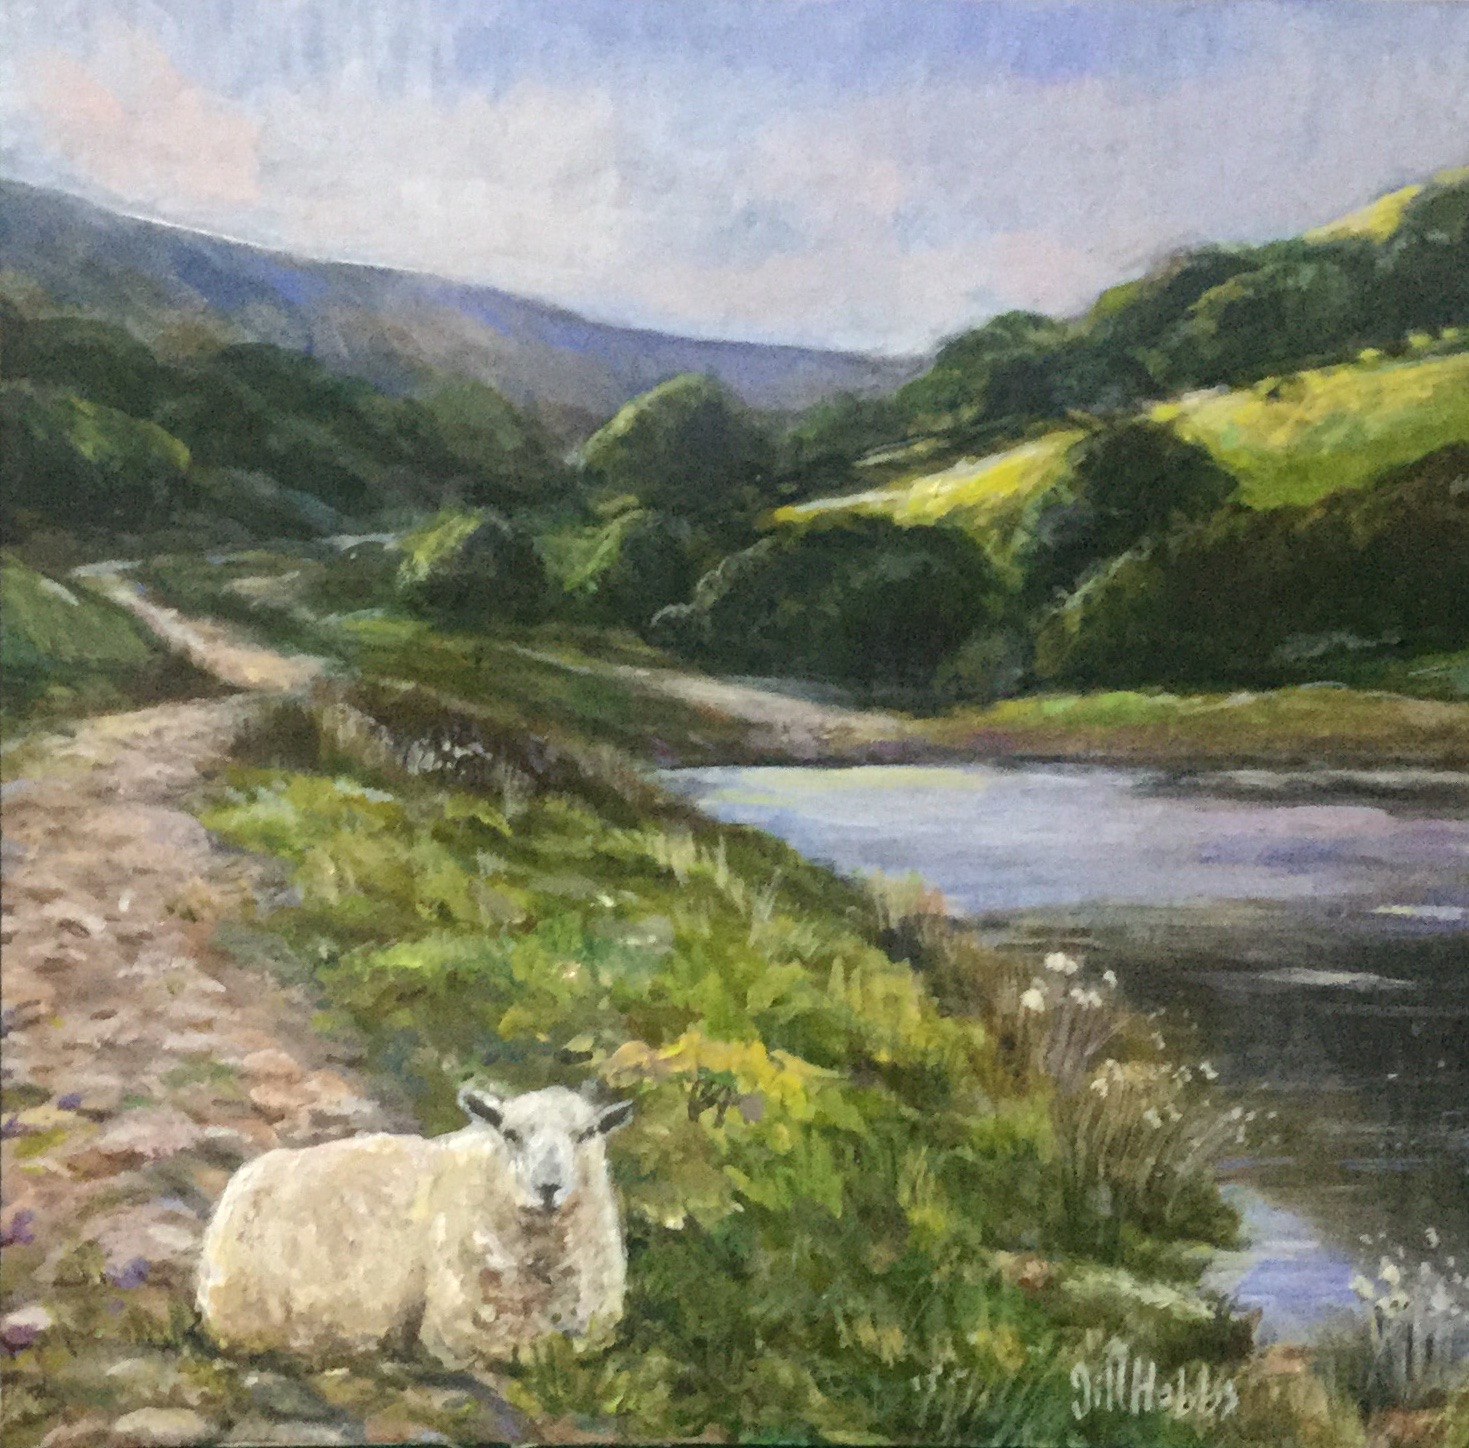 The Ewe, Cwm Lickey Pond. Torfaen